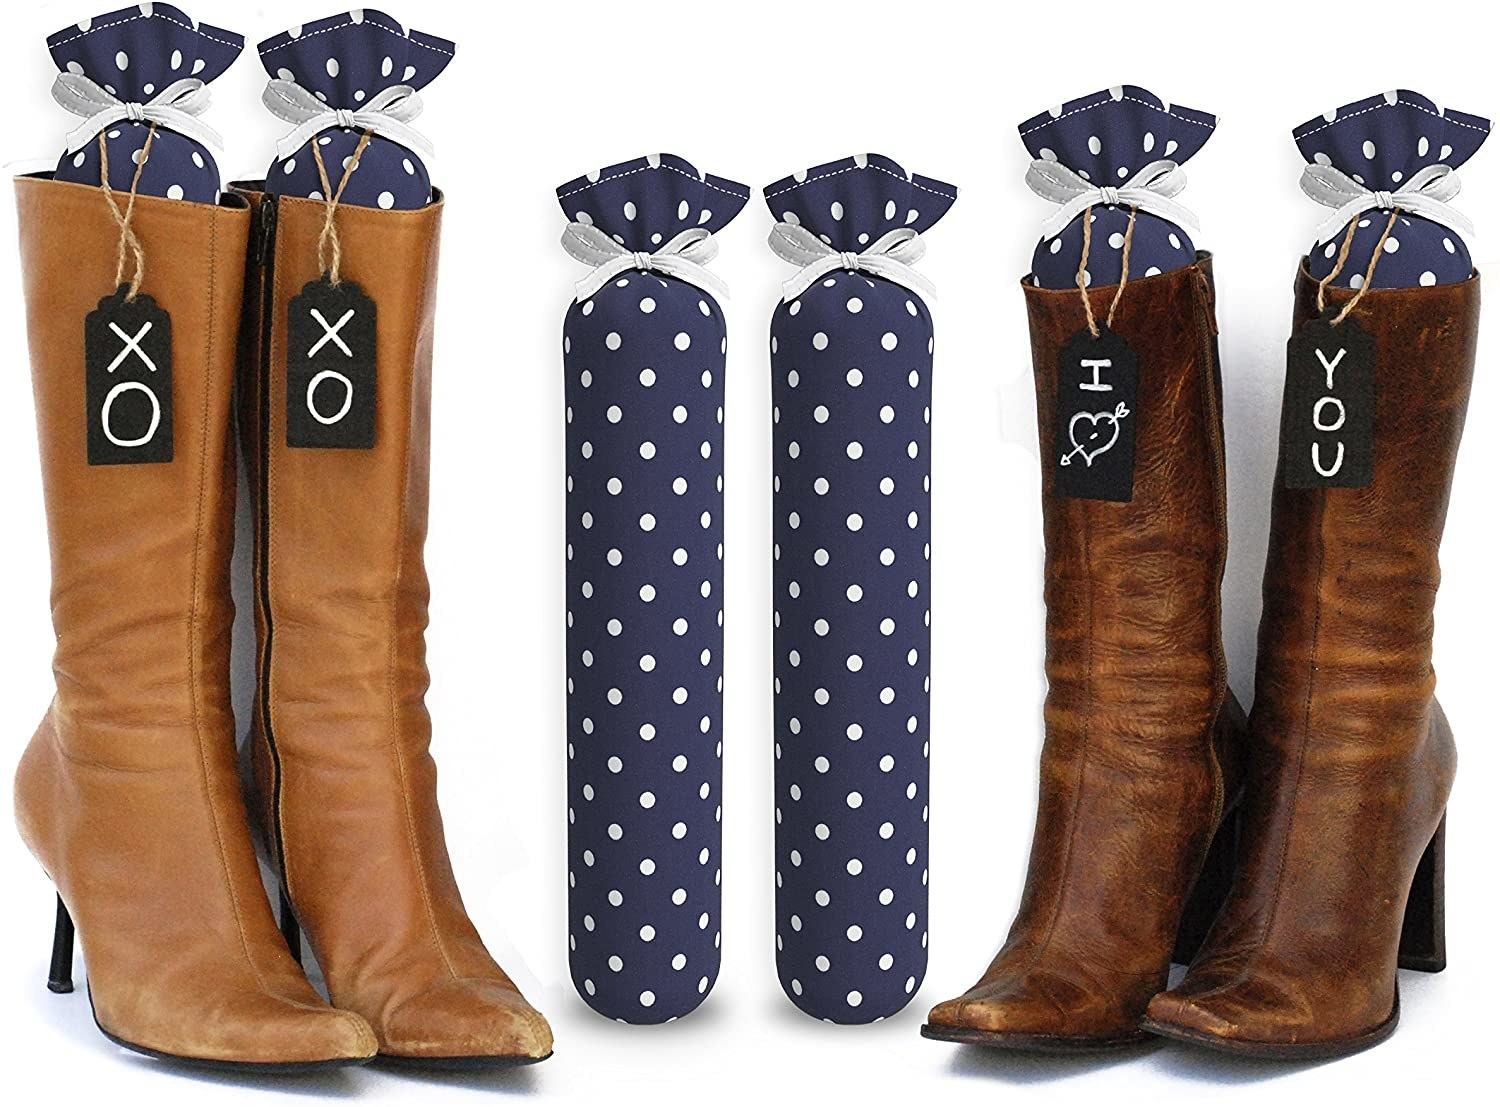 Tall boots with the polka dot stuffers inside holding them up